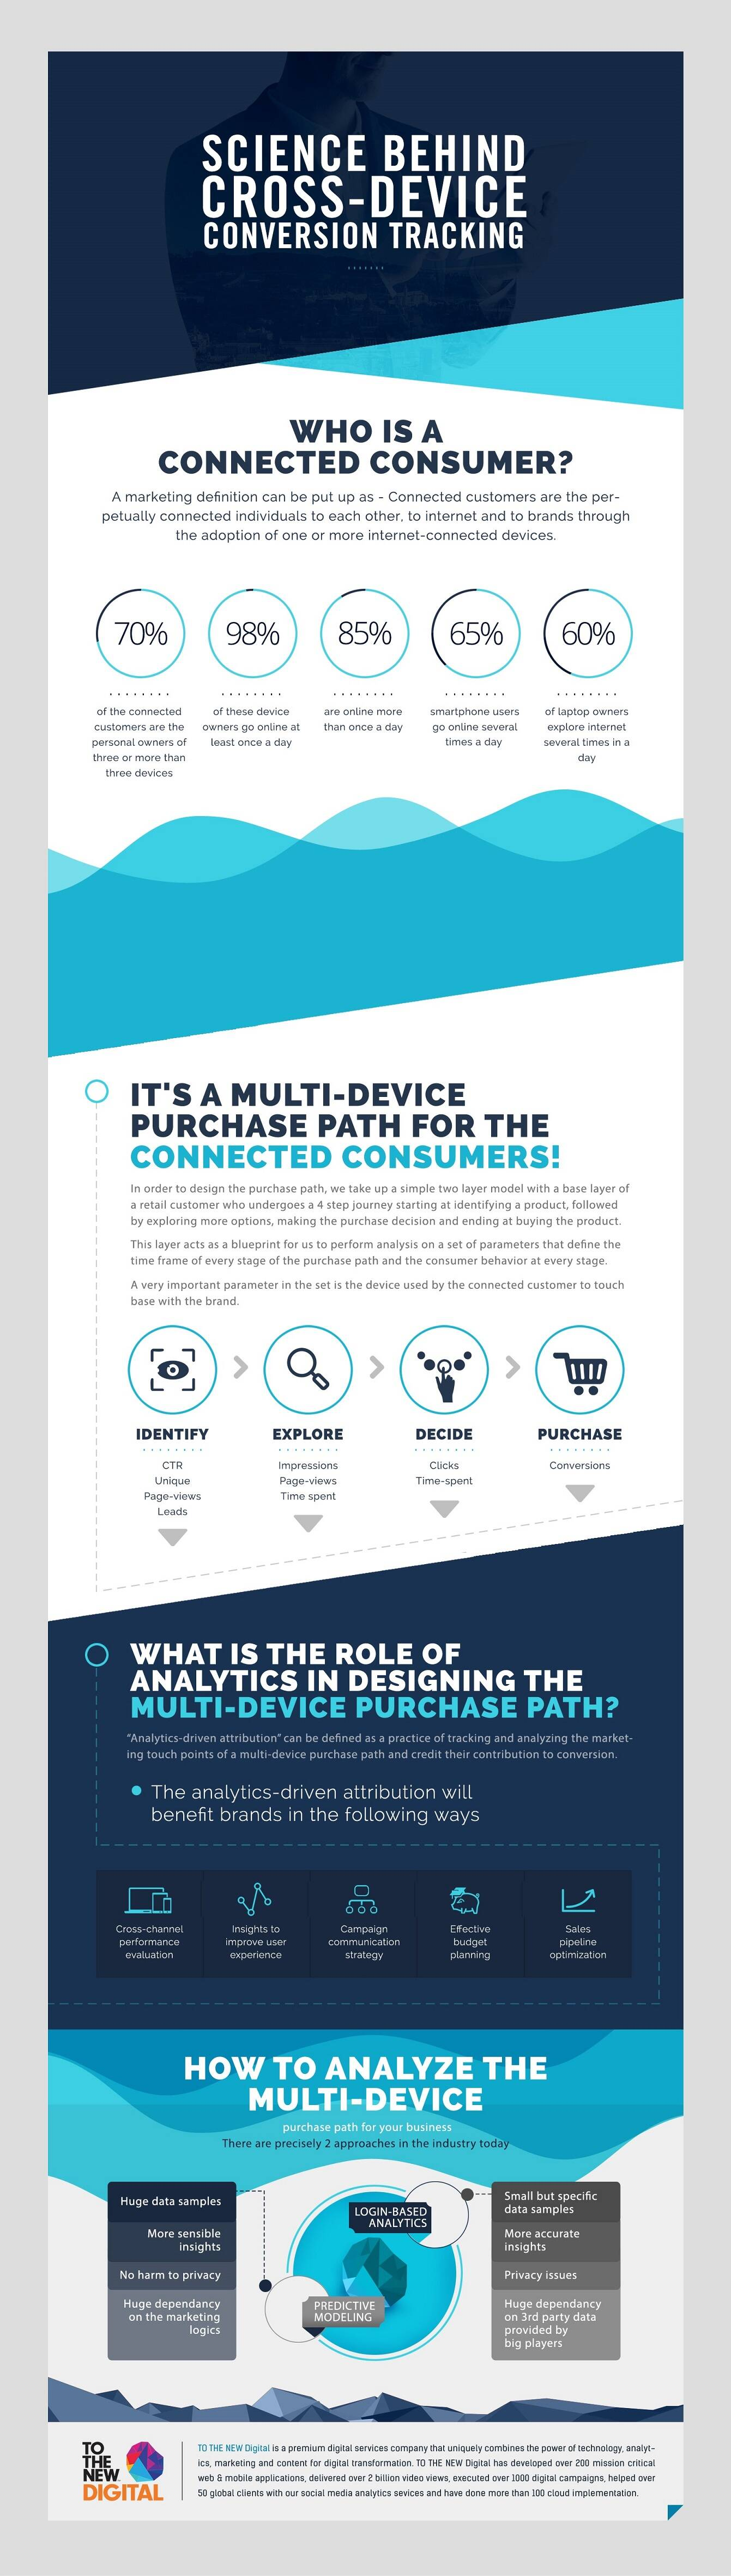 Cross-device-analytics-in-omni-channel-buyers-journey